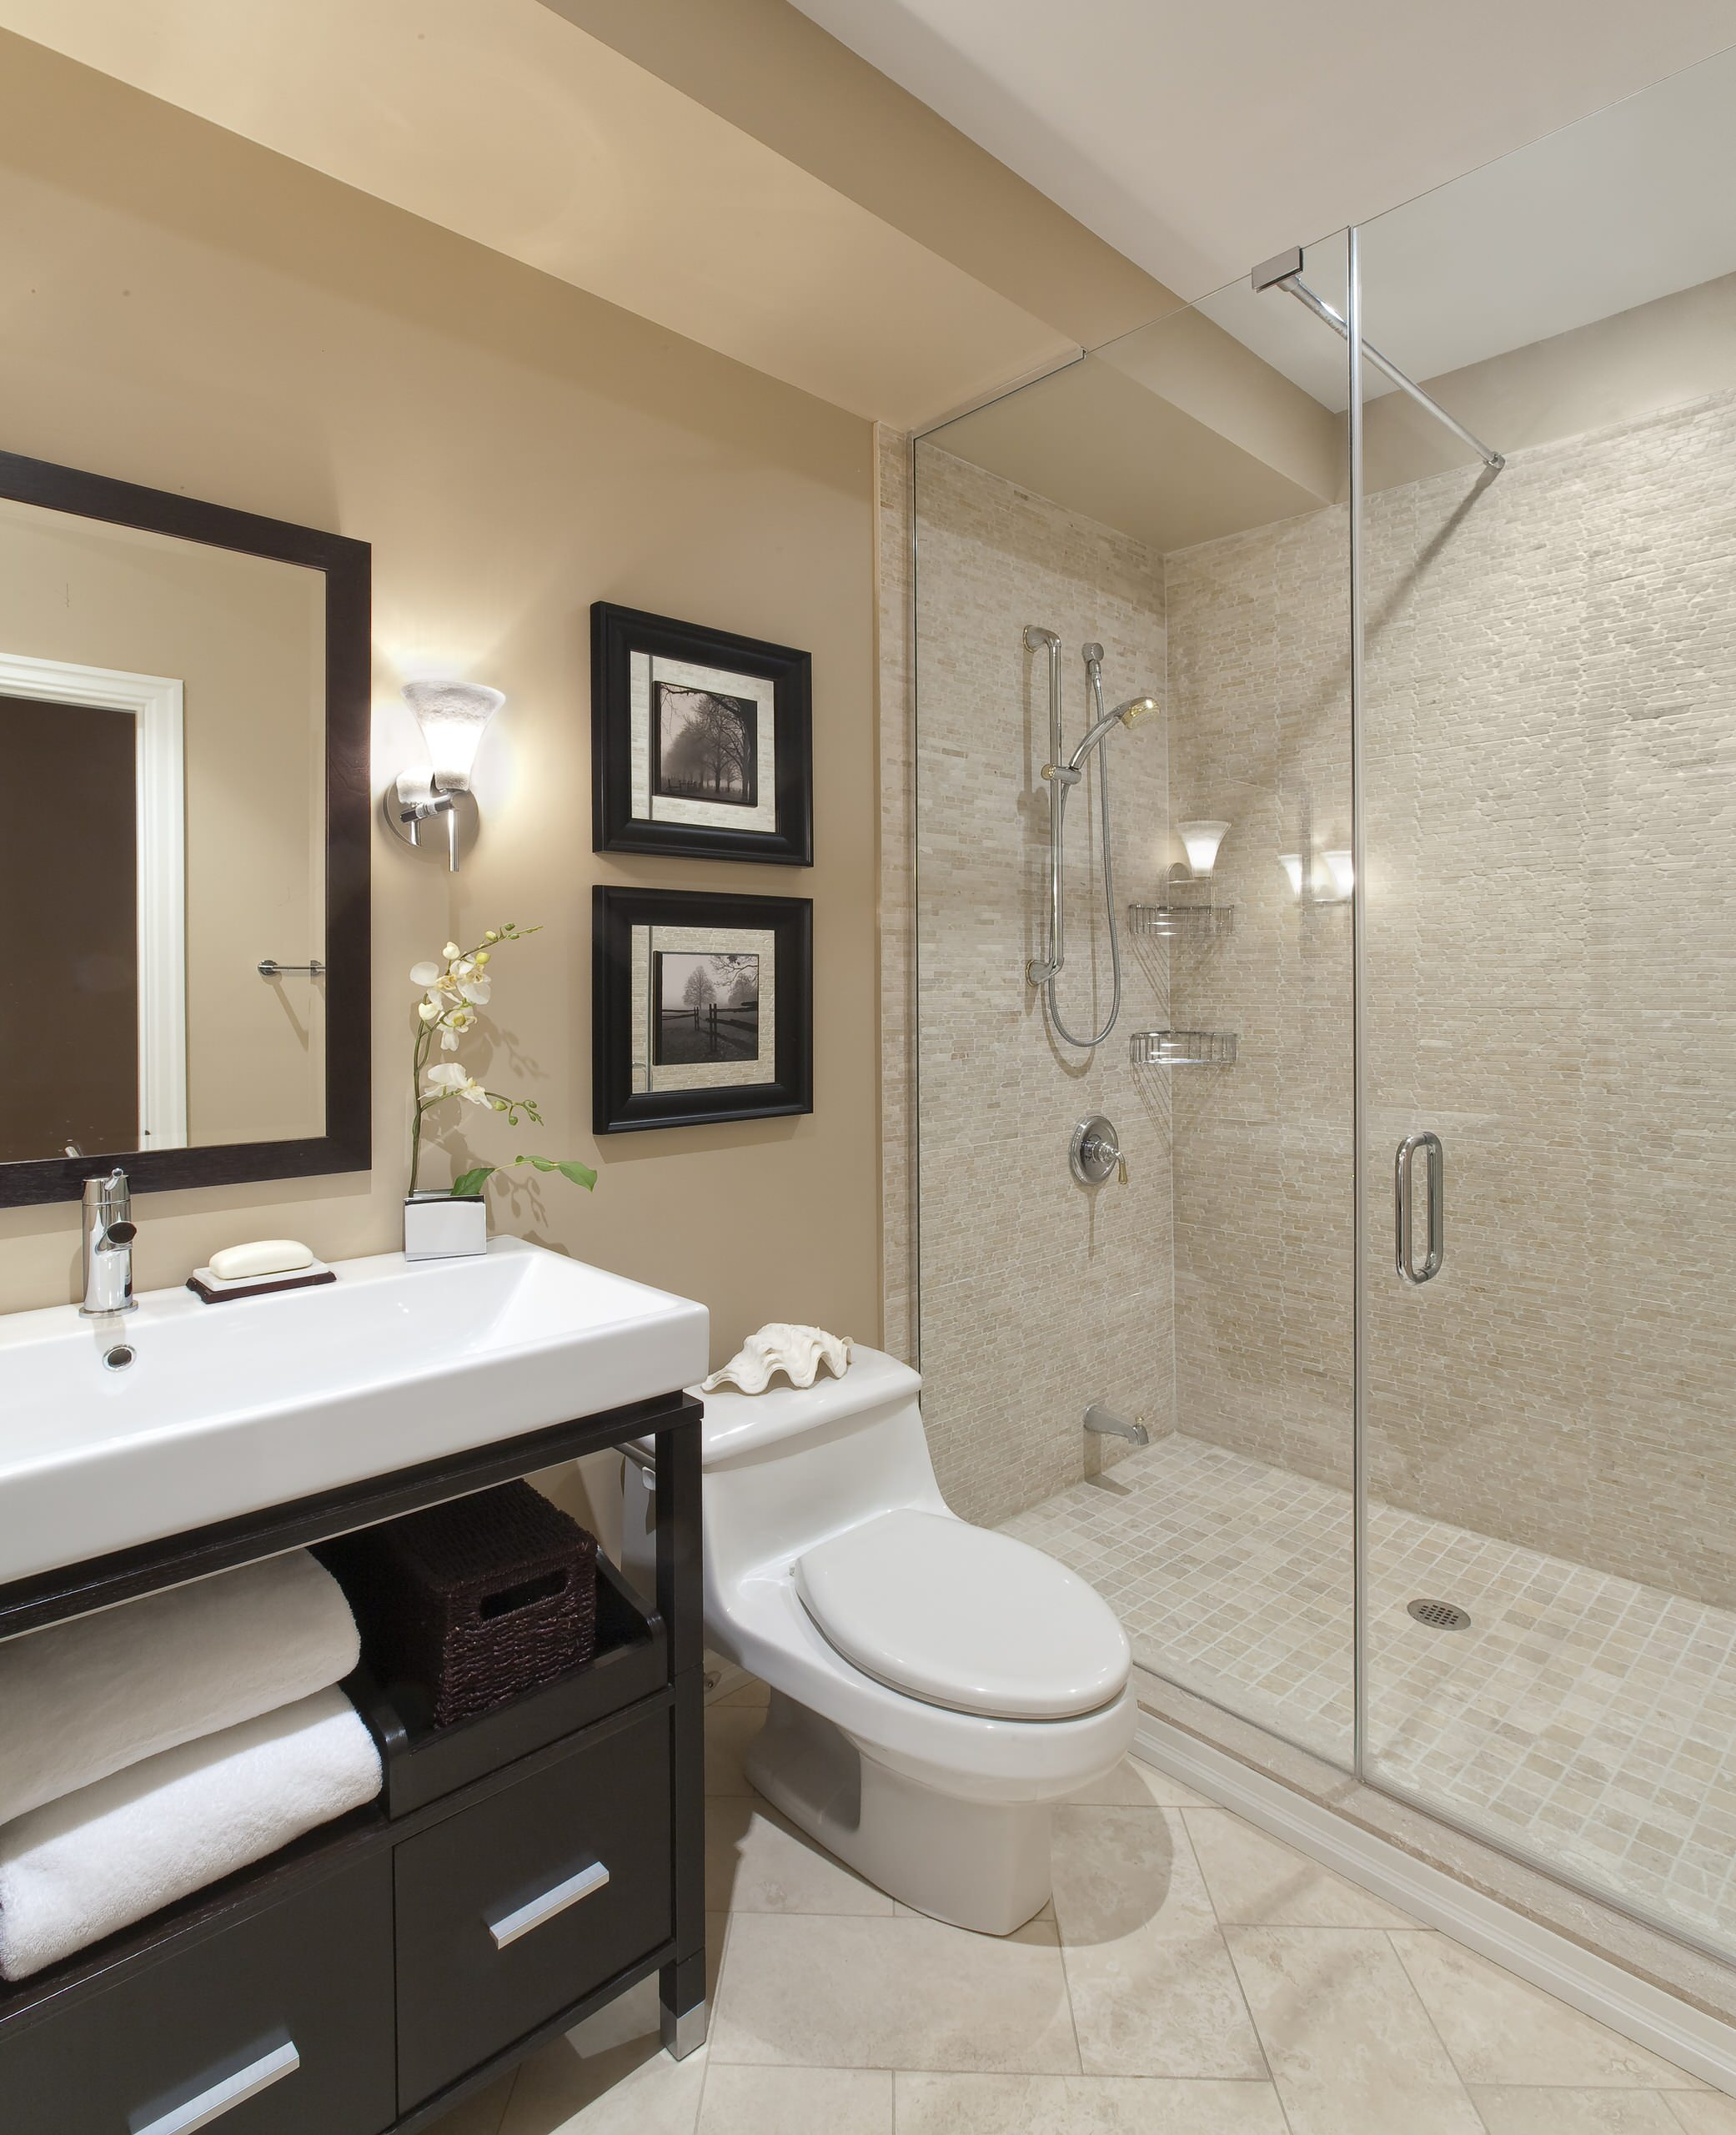 75 Beautiful Contemporary Bathroom Pictures Ideas April 2021 Houzz